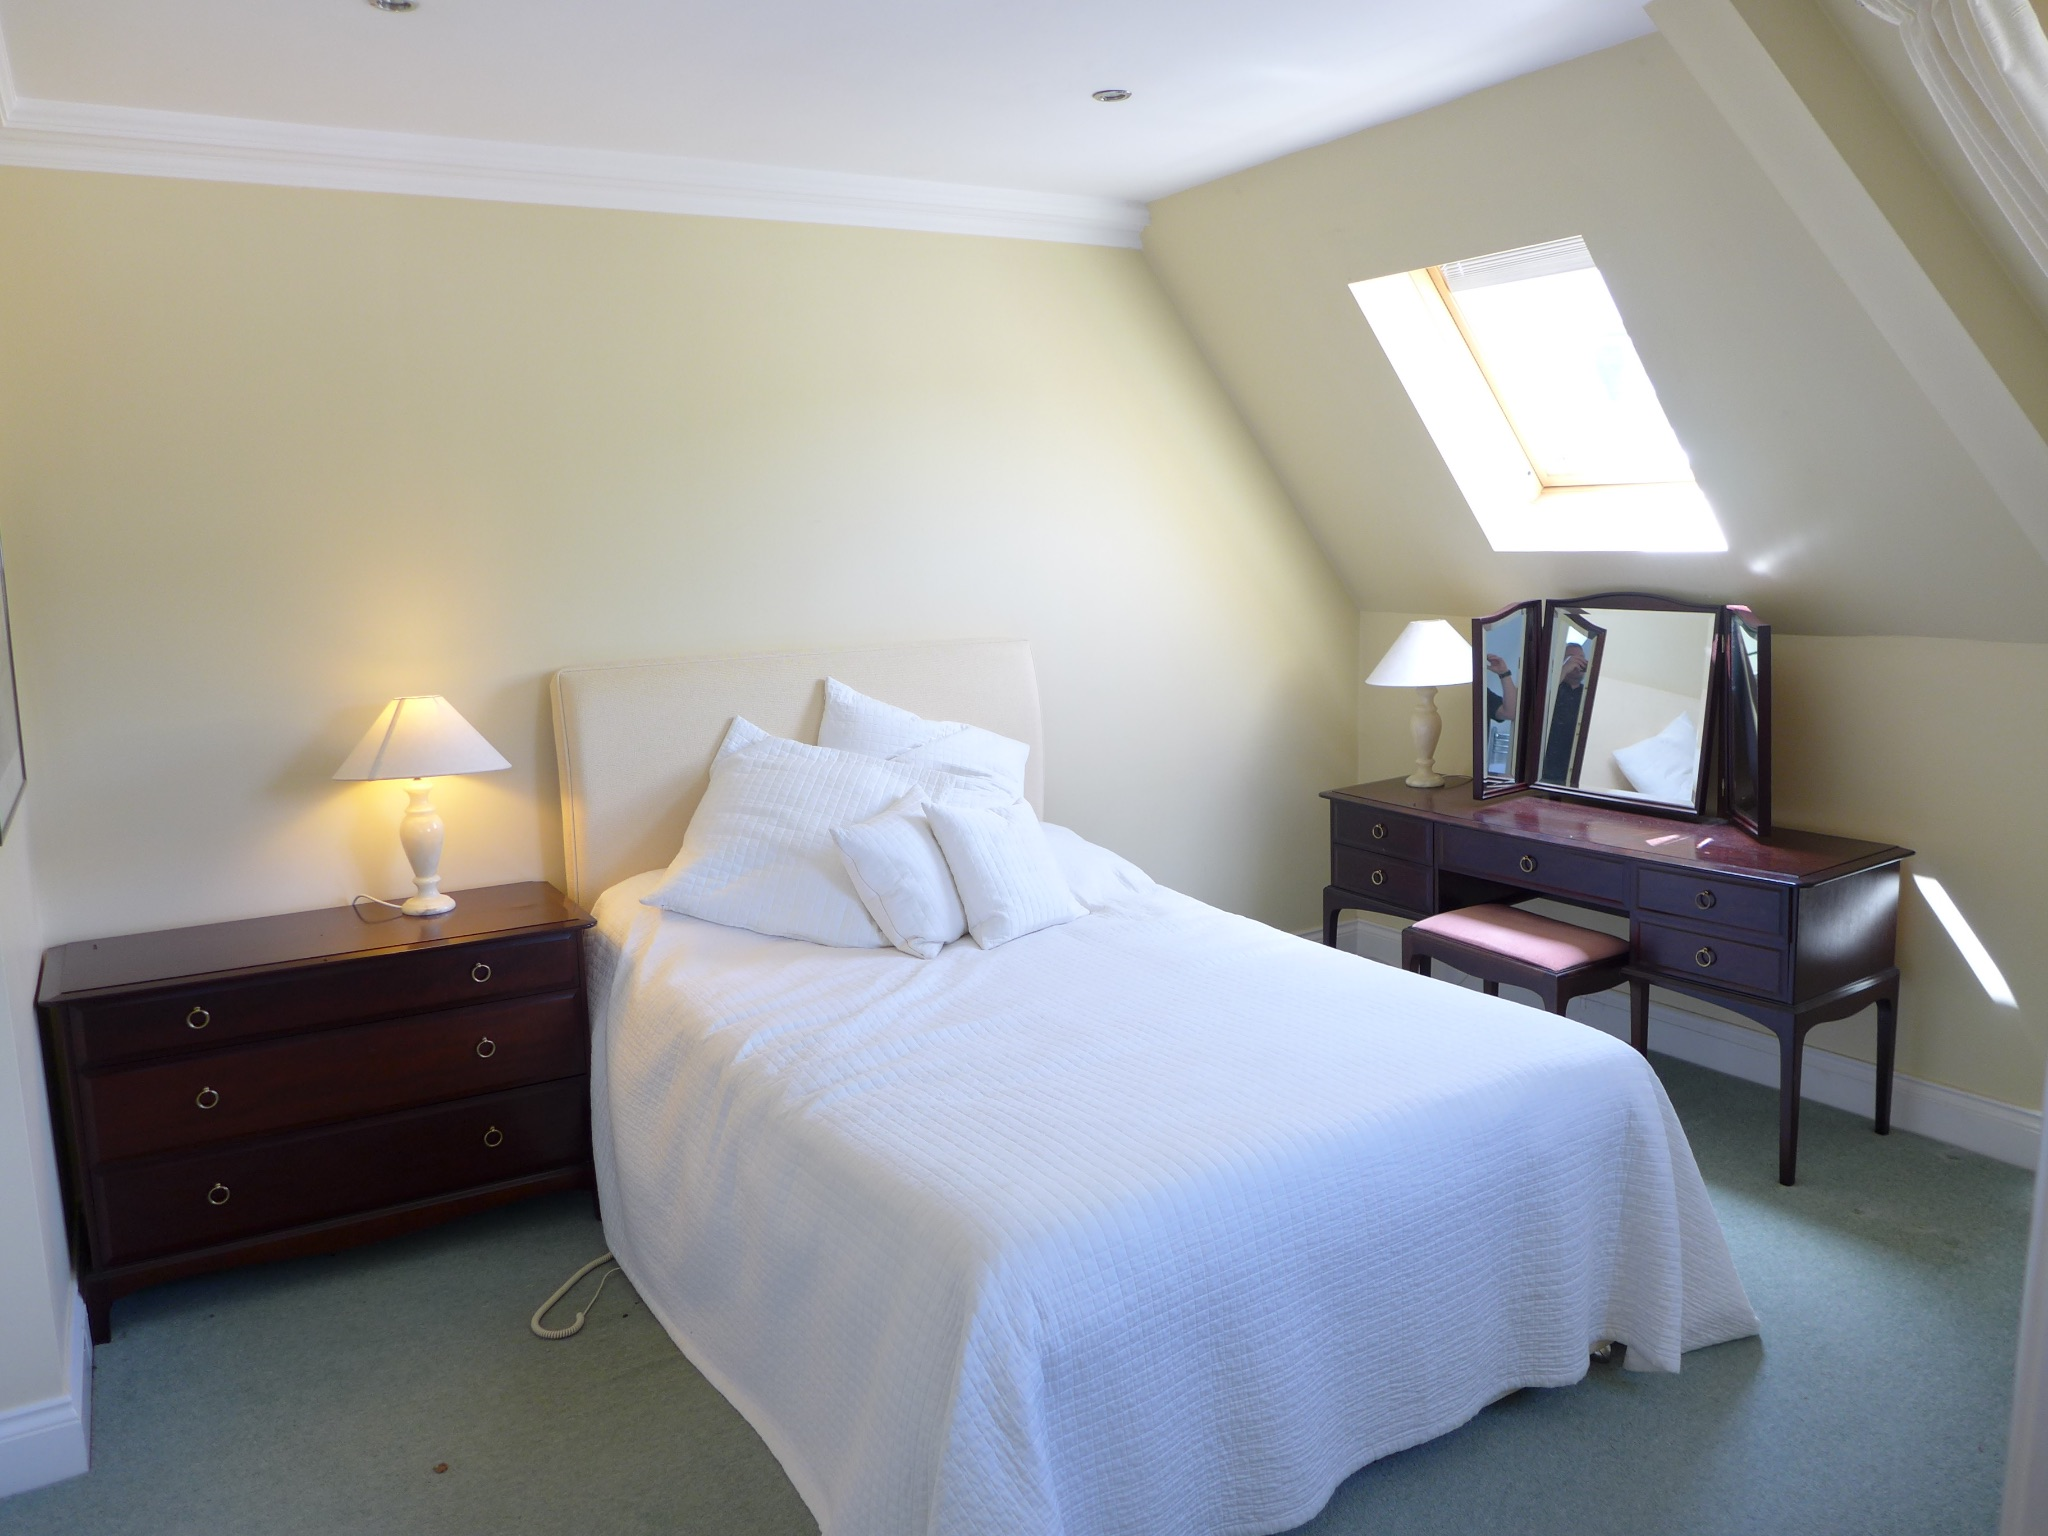 3 bedroom detached house For Sale in Todmorden - Photograph 12.